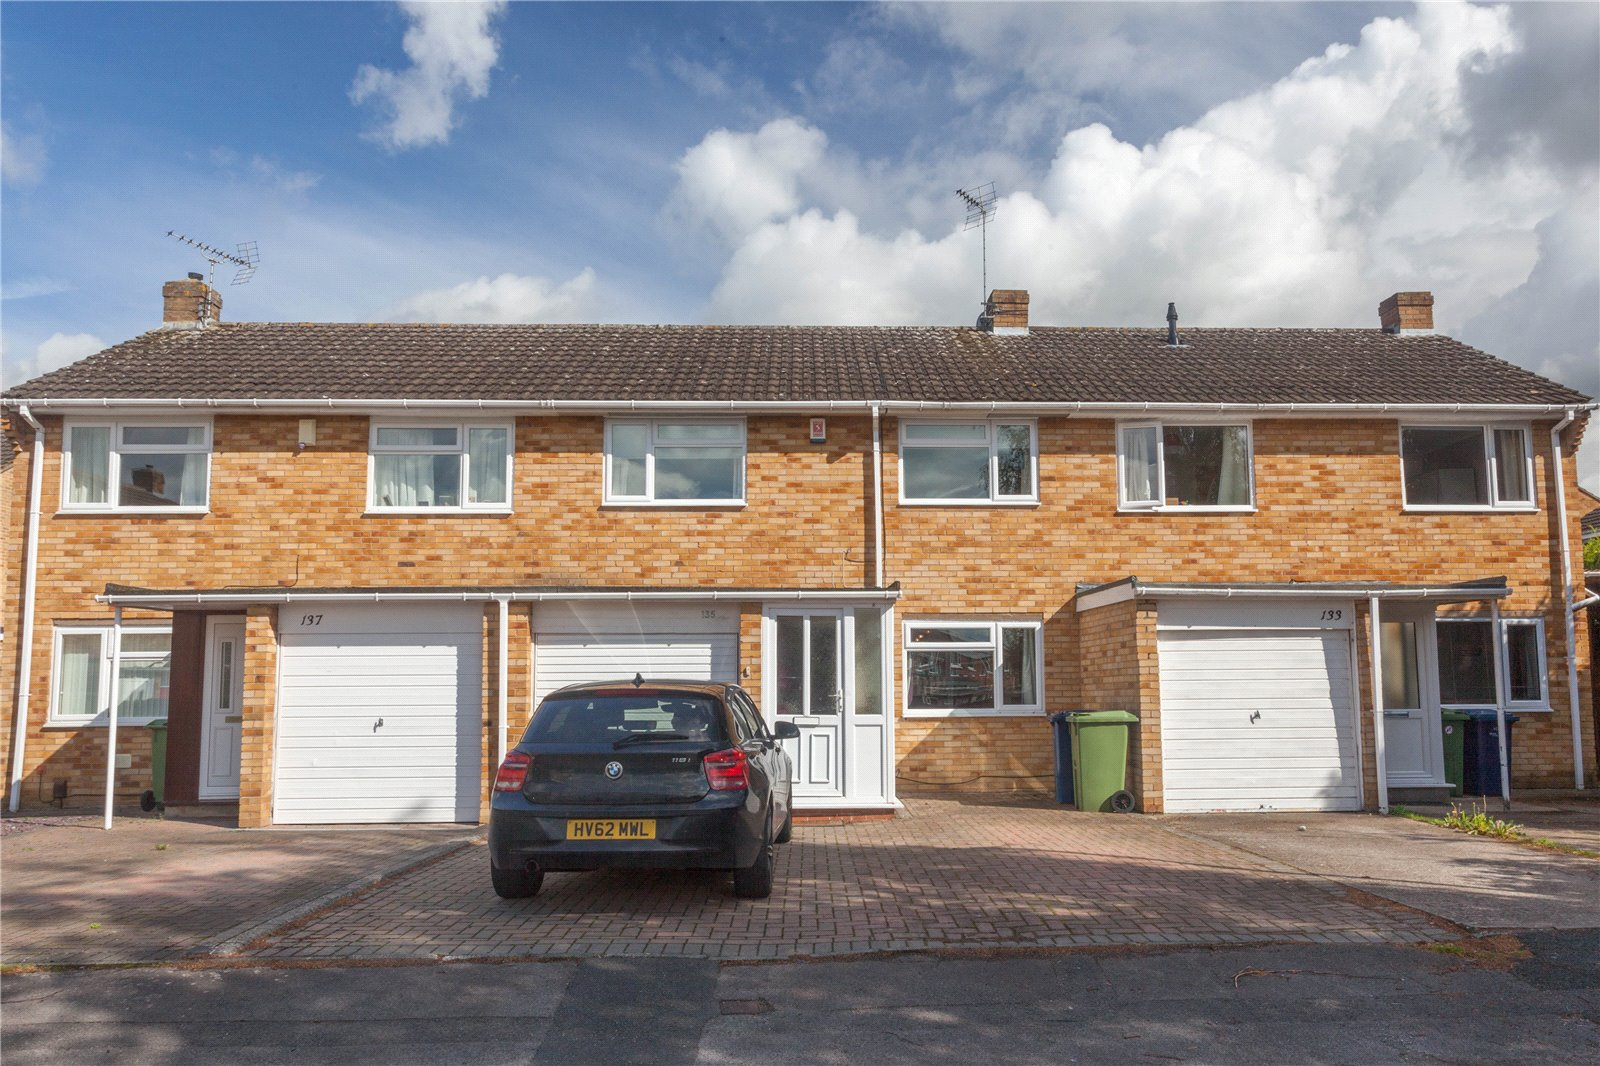 3 Bedrooms Terraced House for sale in Abbotswood Road Brockworth Gloucester GL3